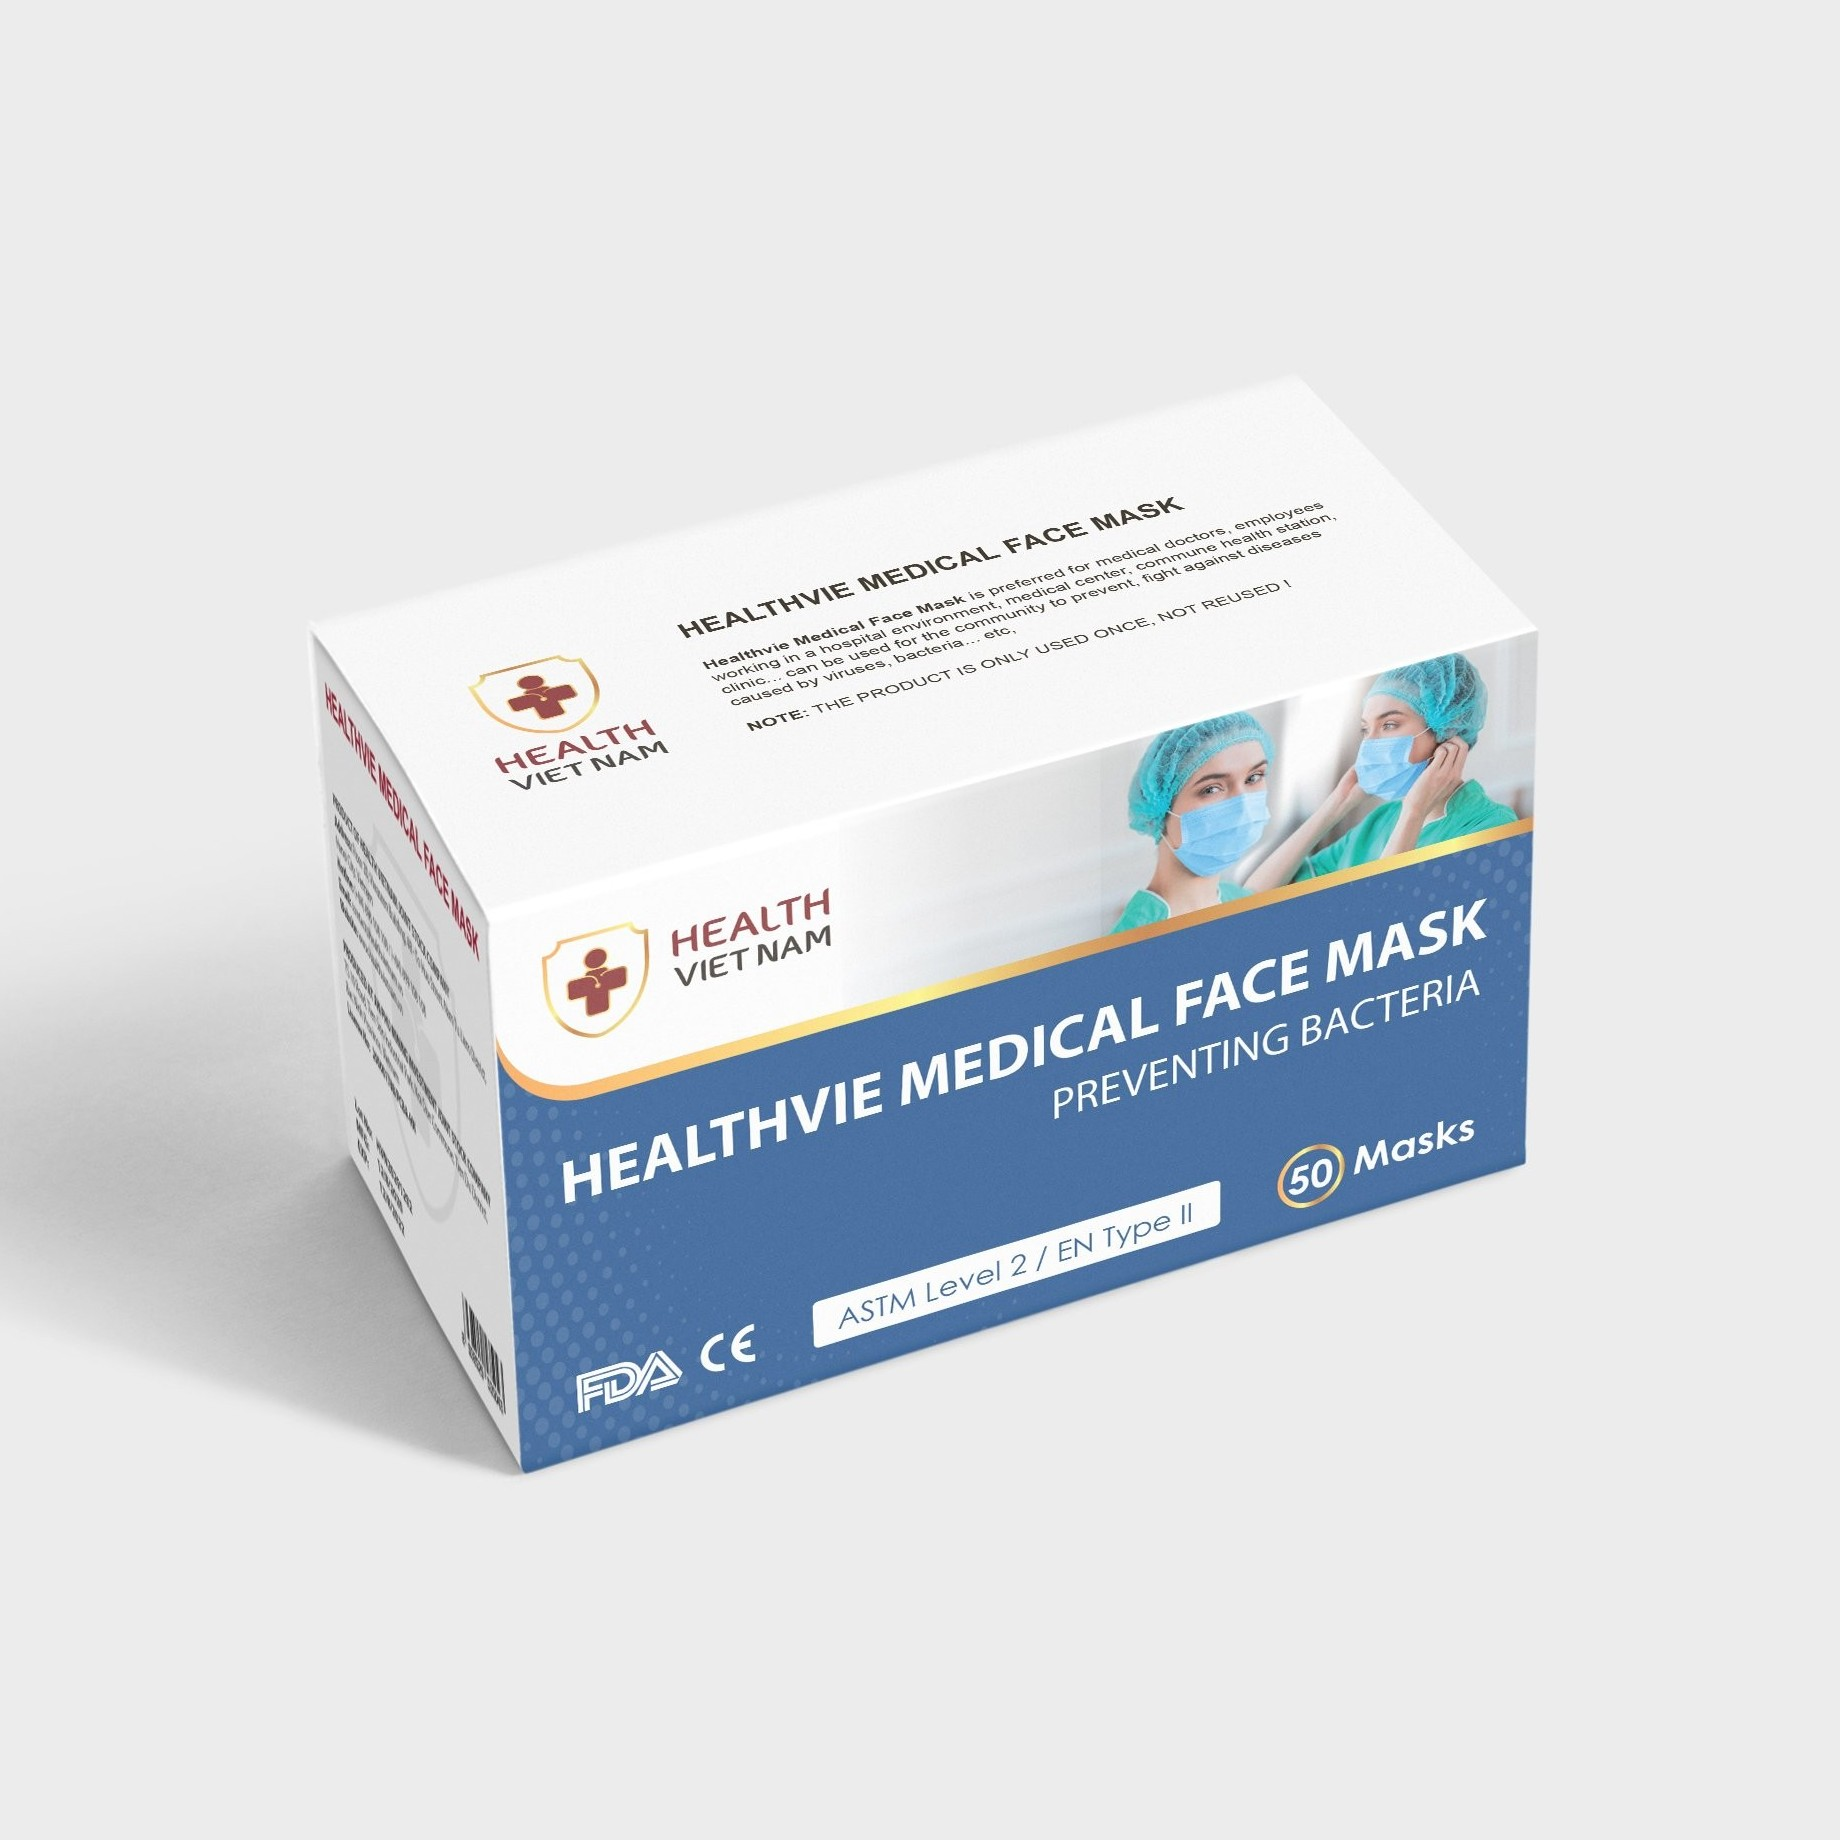 Healthvie Medical Face Mask Preventing Bacteria Level 2 - Export